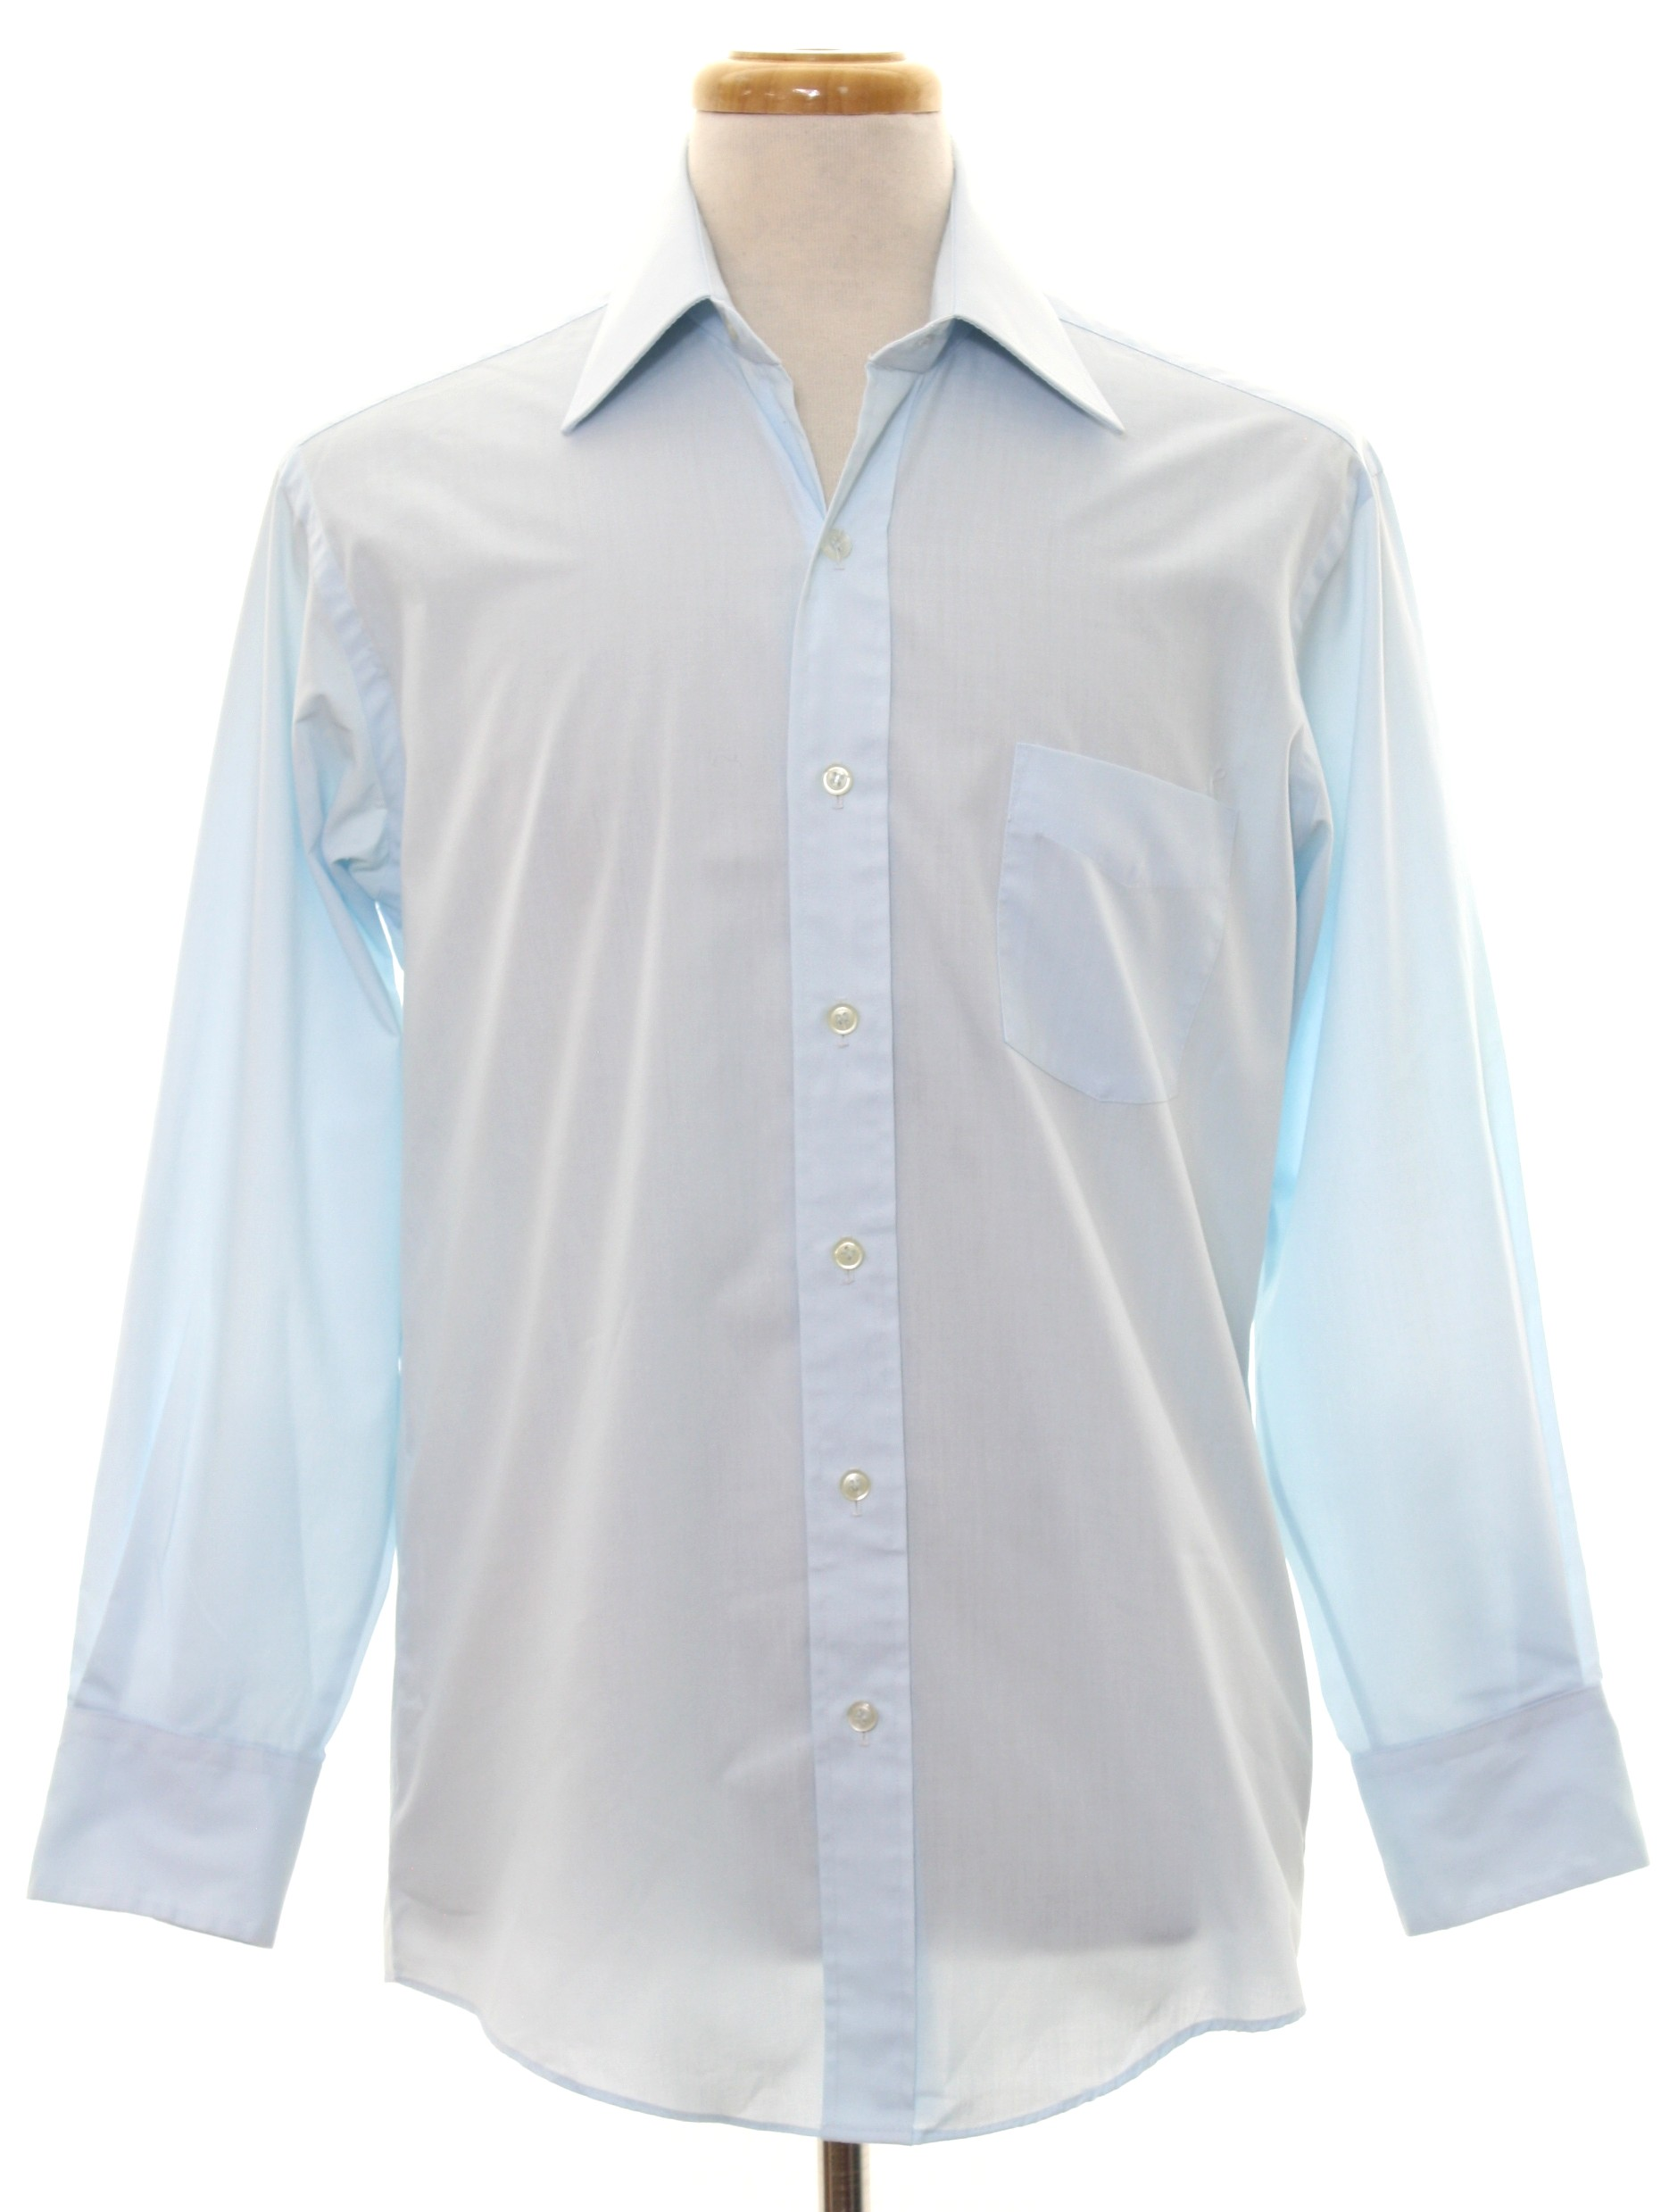 Mens White Dress Shirts Cheap Joe Maloy